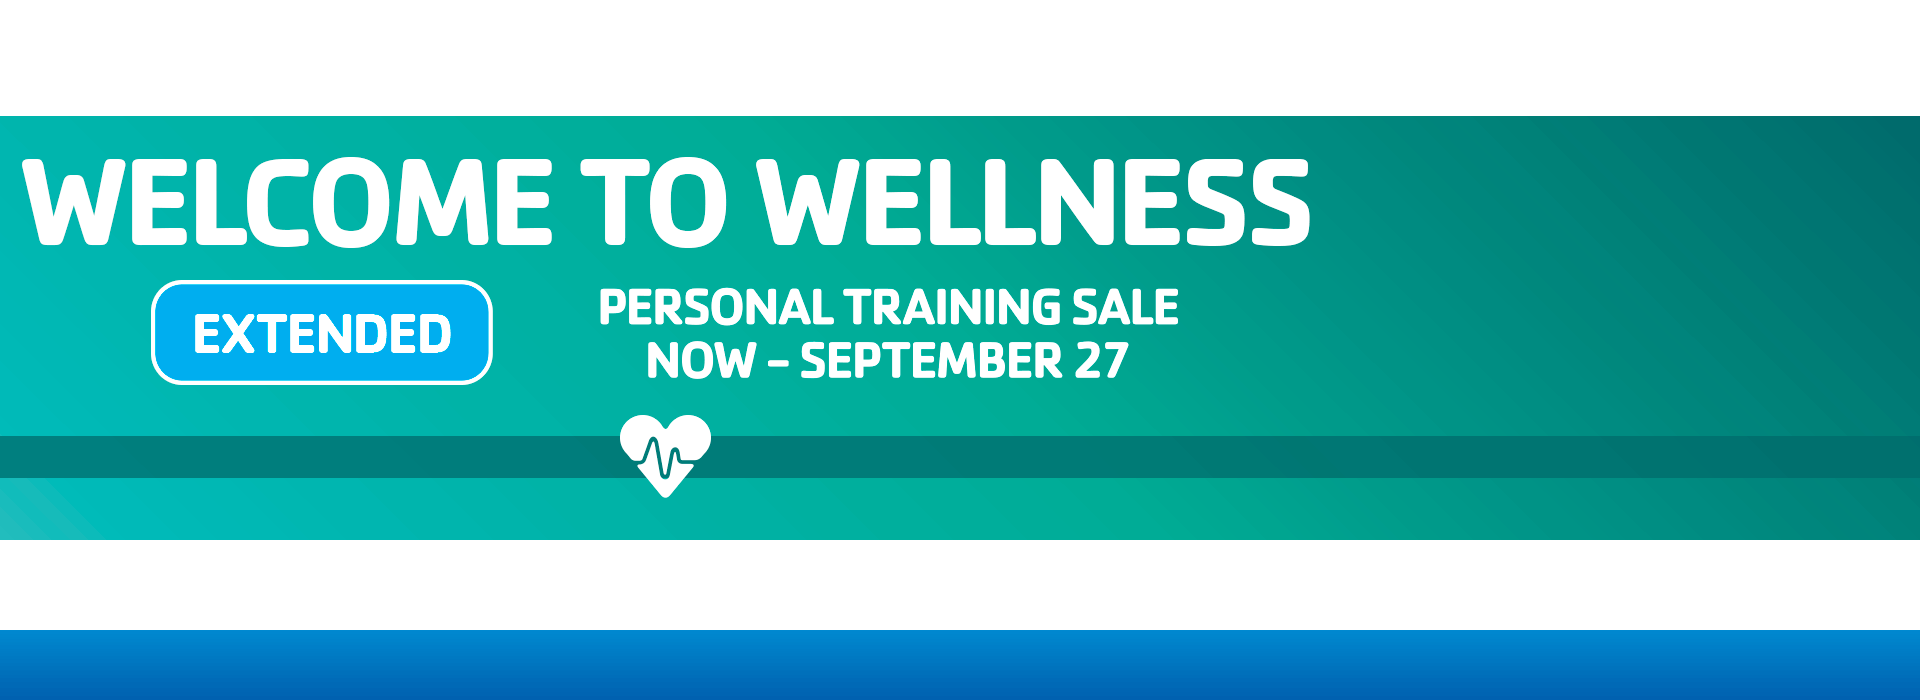 2021_YMCA_Welcome-to-Wellness-Extended_HS